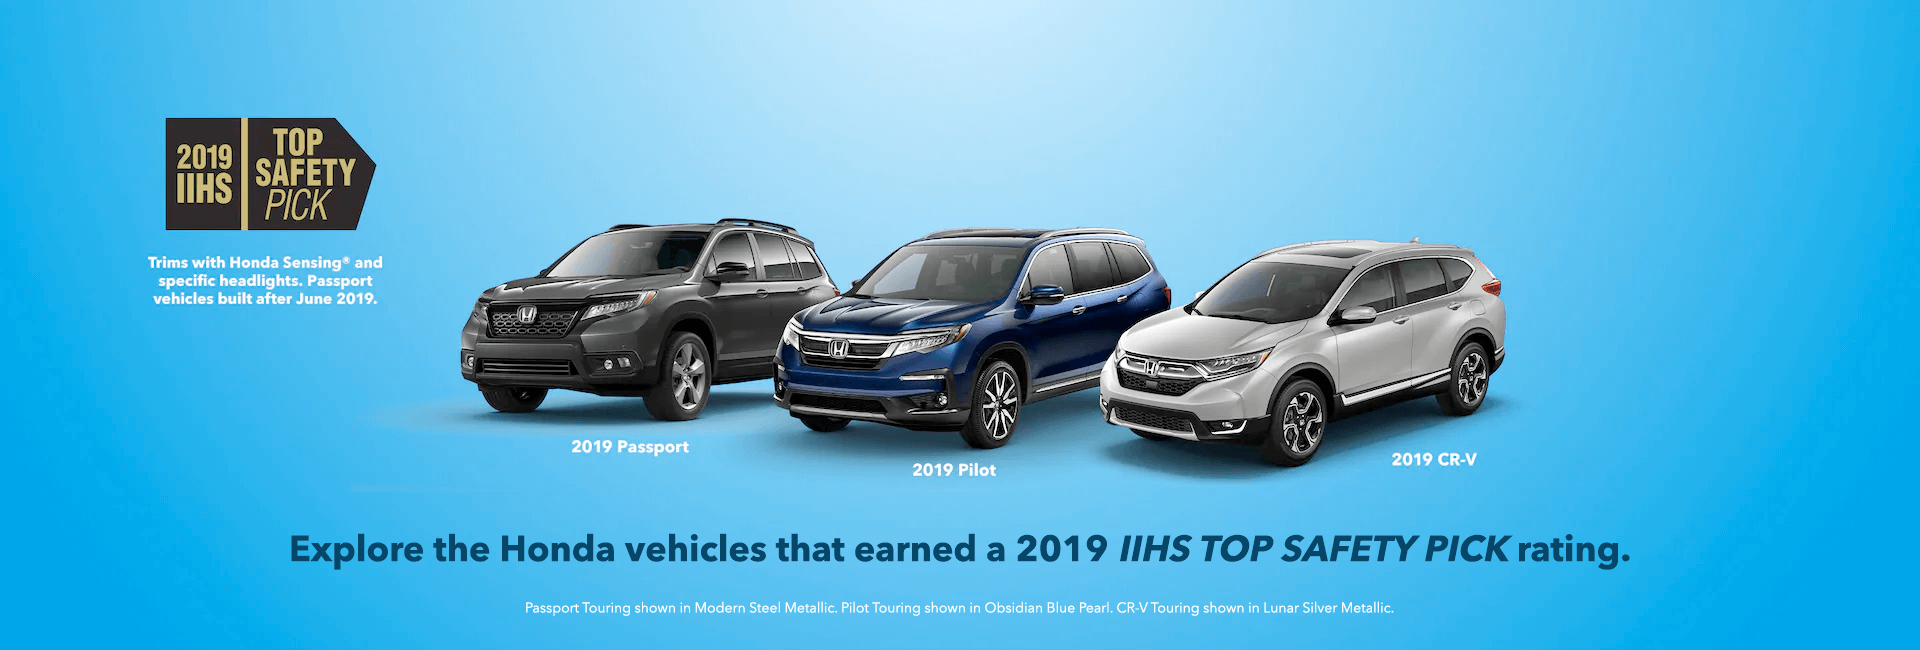 2019 IIHS Top Safety Pick Honda Award Slider